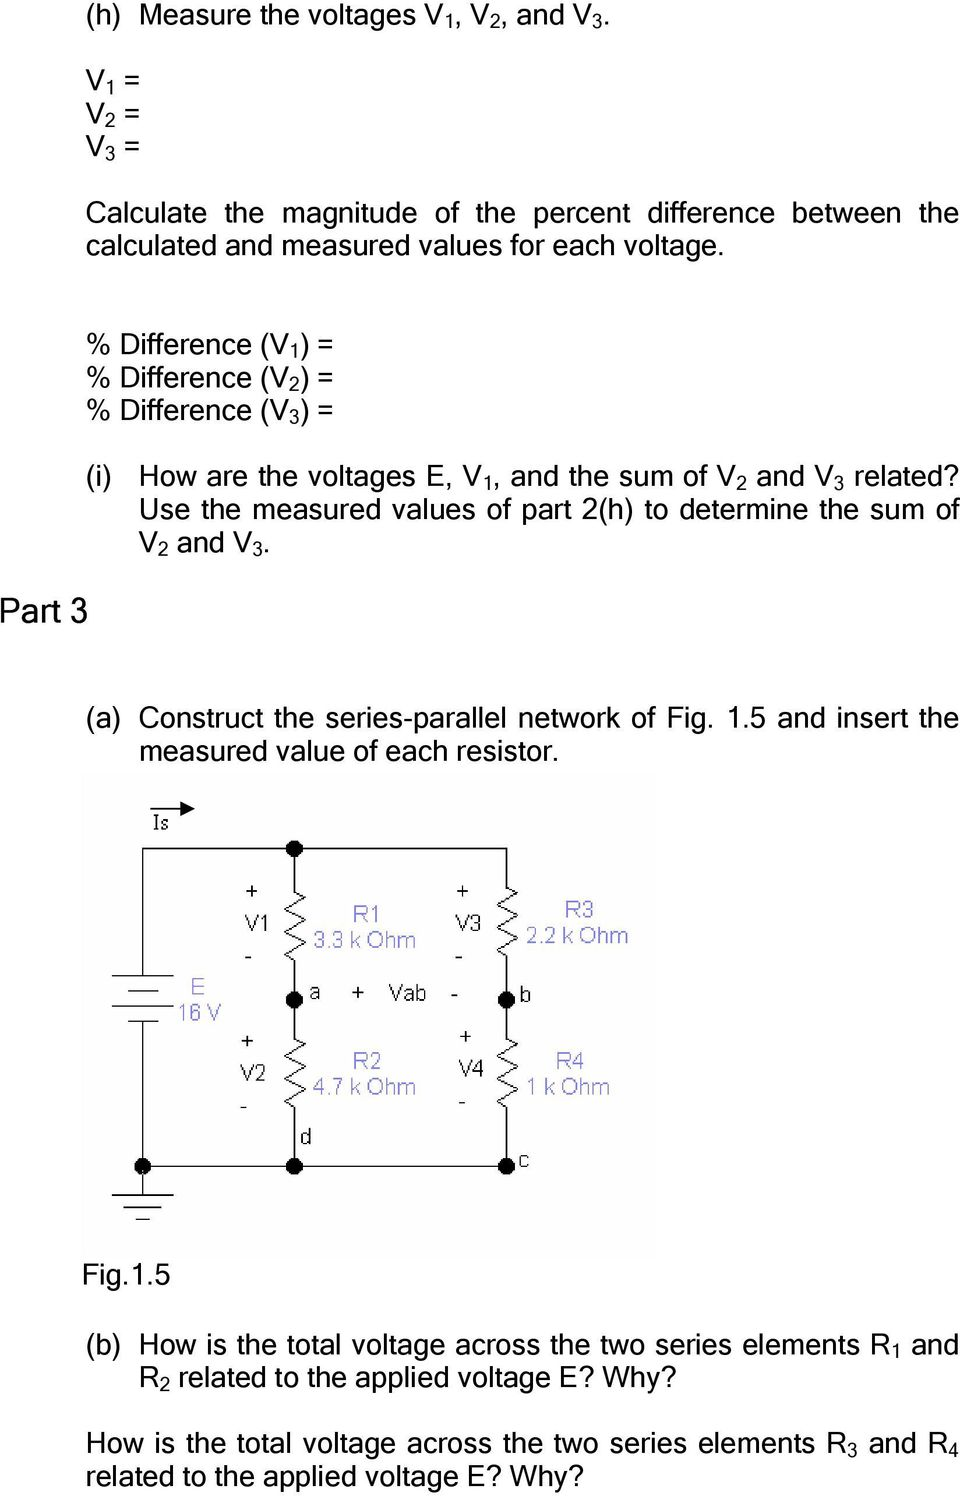 Use the measured values of part 2(h) to determine the sum of V 2 and V 3. (a) Construct the series-parallel network of Fig. 1.5 and insert the measured value of each resistor.